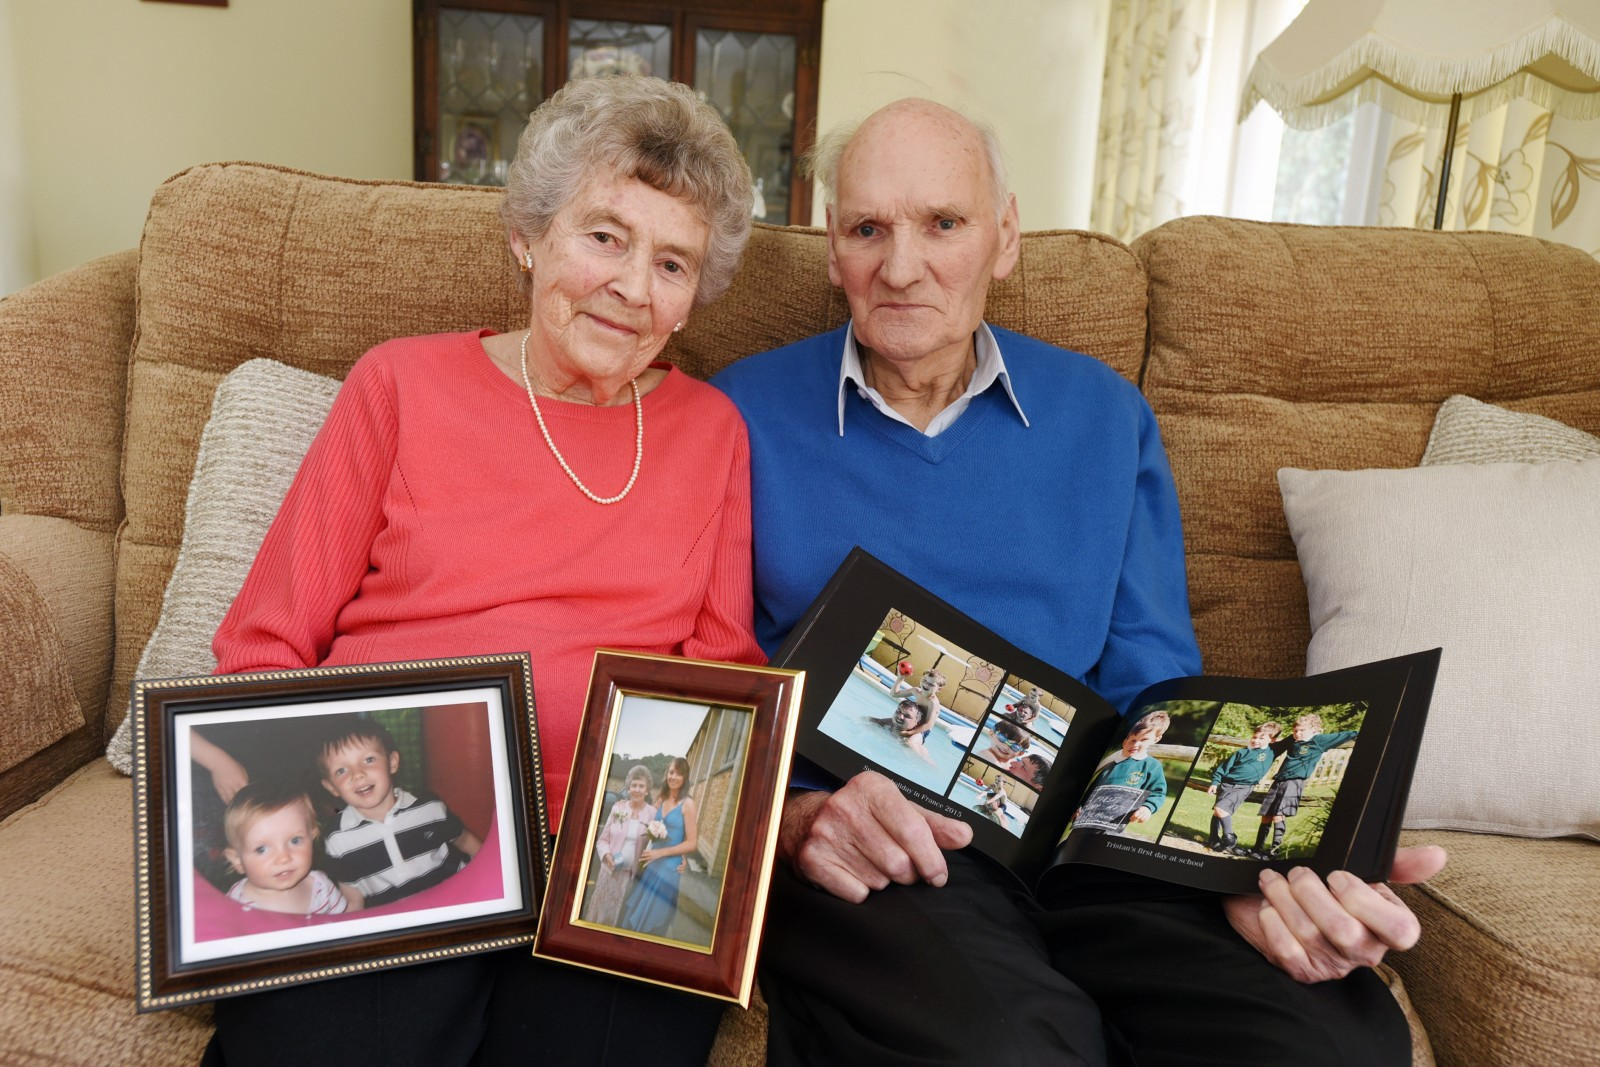 At 80 years old, one great-gran has becoming the longest-surviving transplant patient in the country